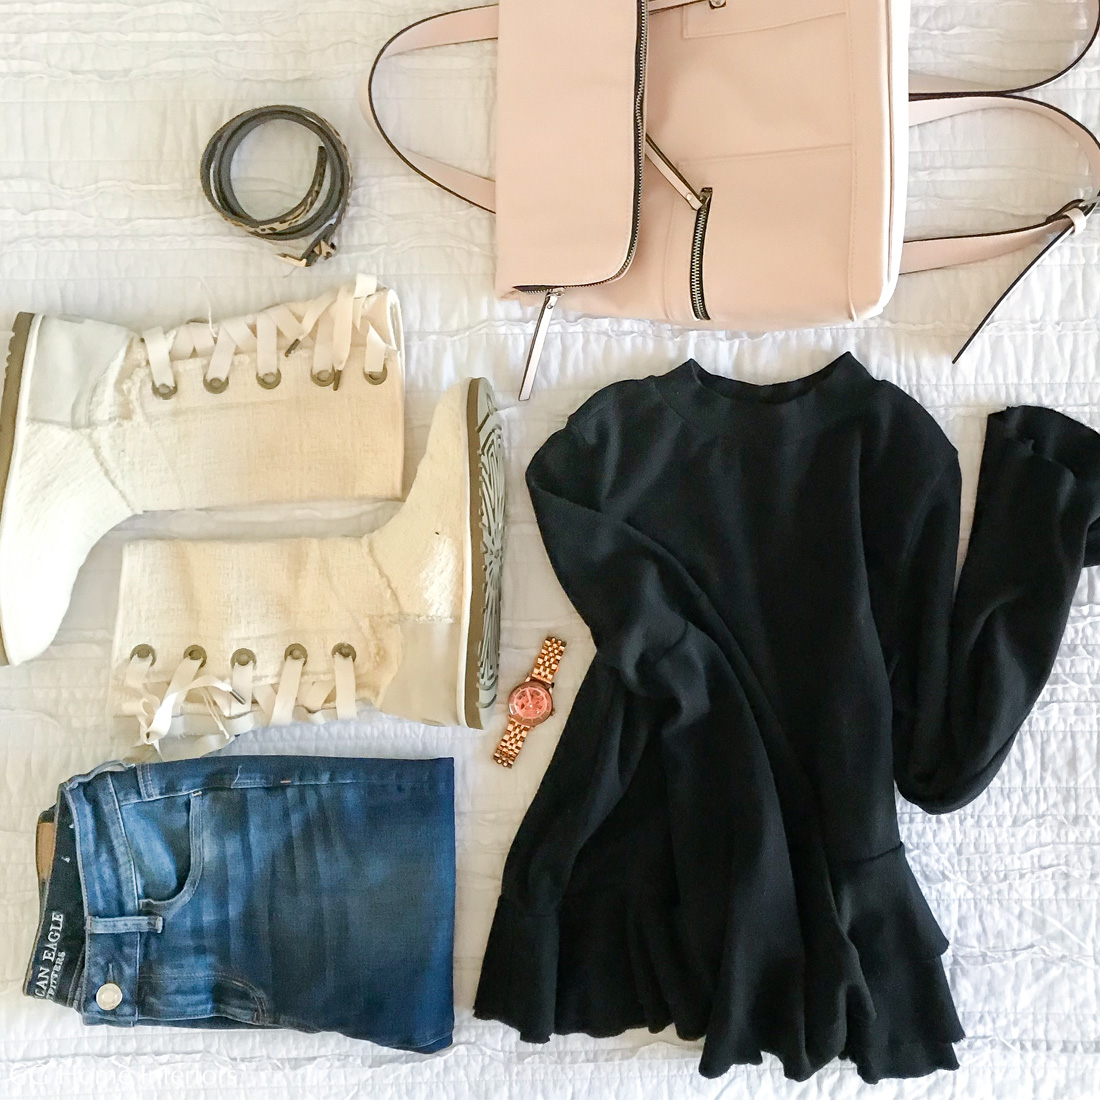 Comfy Casual Light Winter Outfit